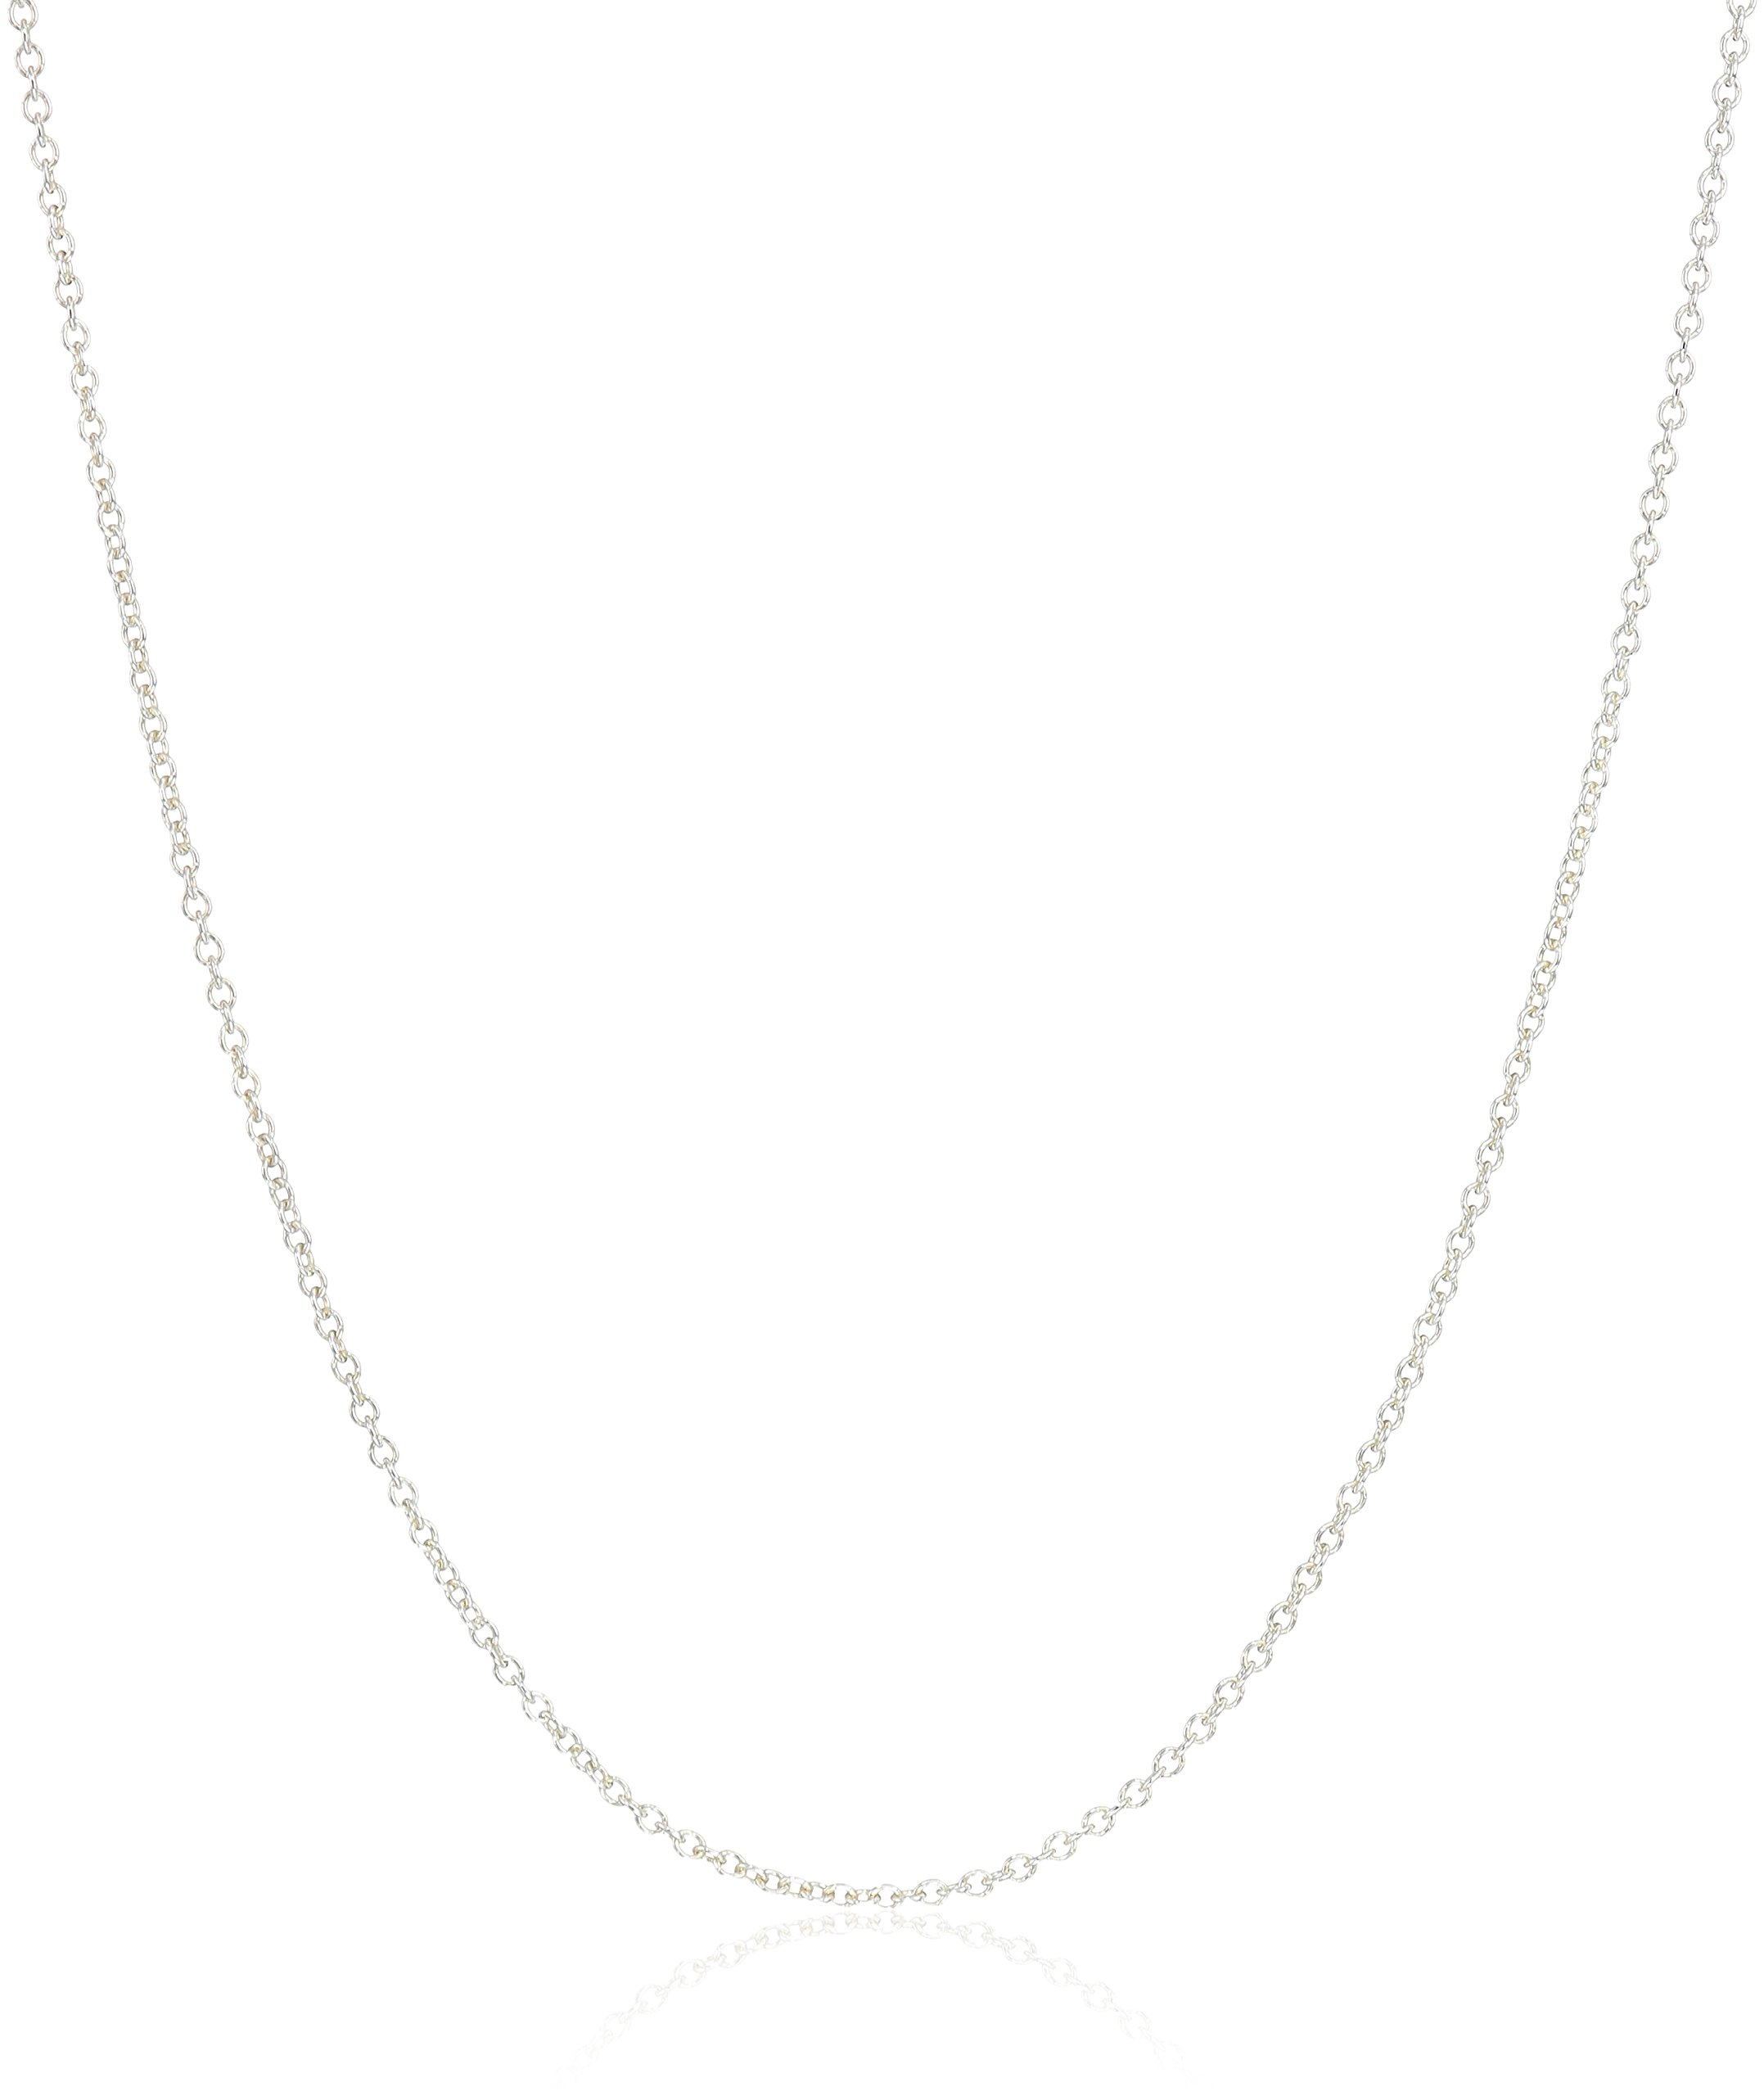 Dogeared Superfine Replacement Chain, 16'' + 2'' Extension, 0.925 Sterling Silver by Dogeared (Image #2)